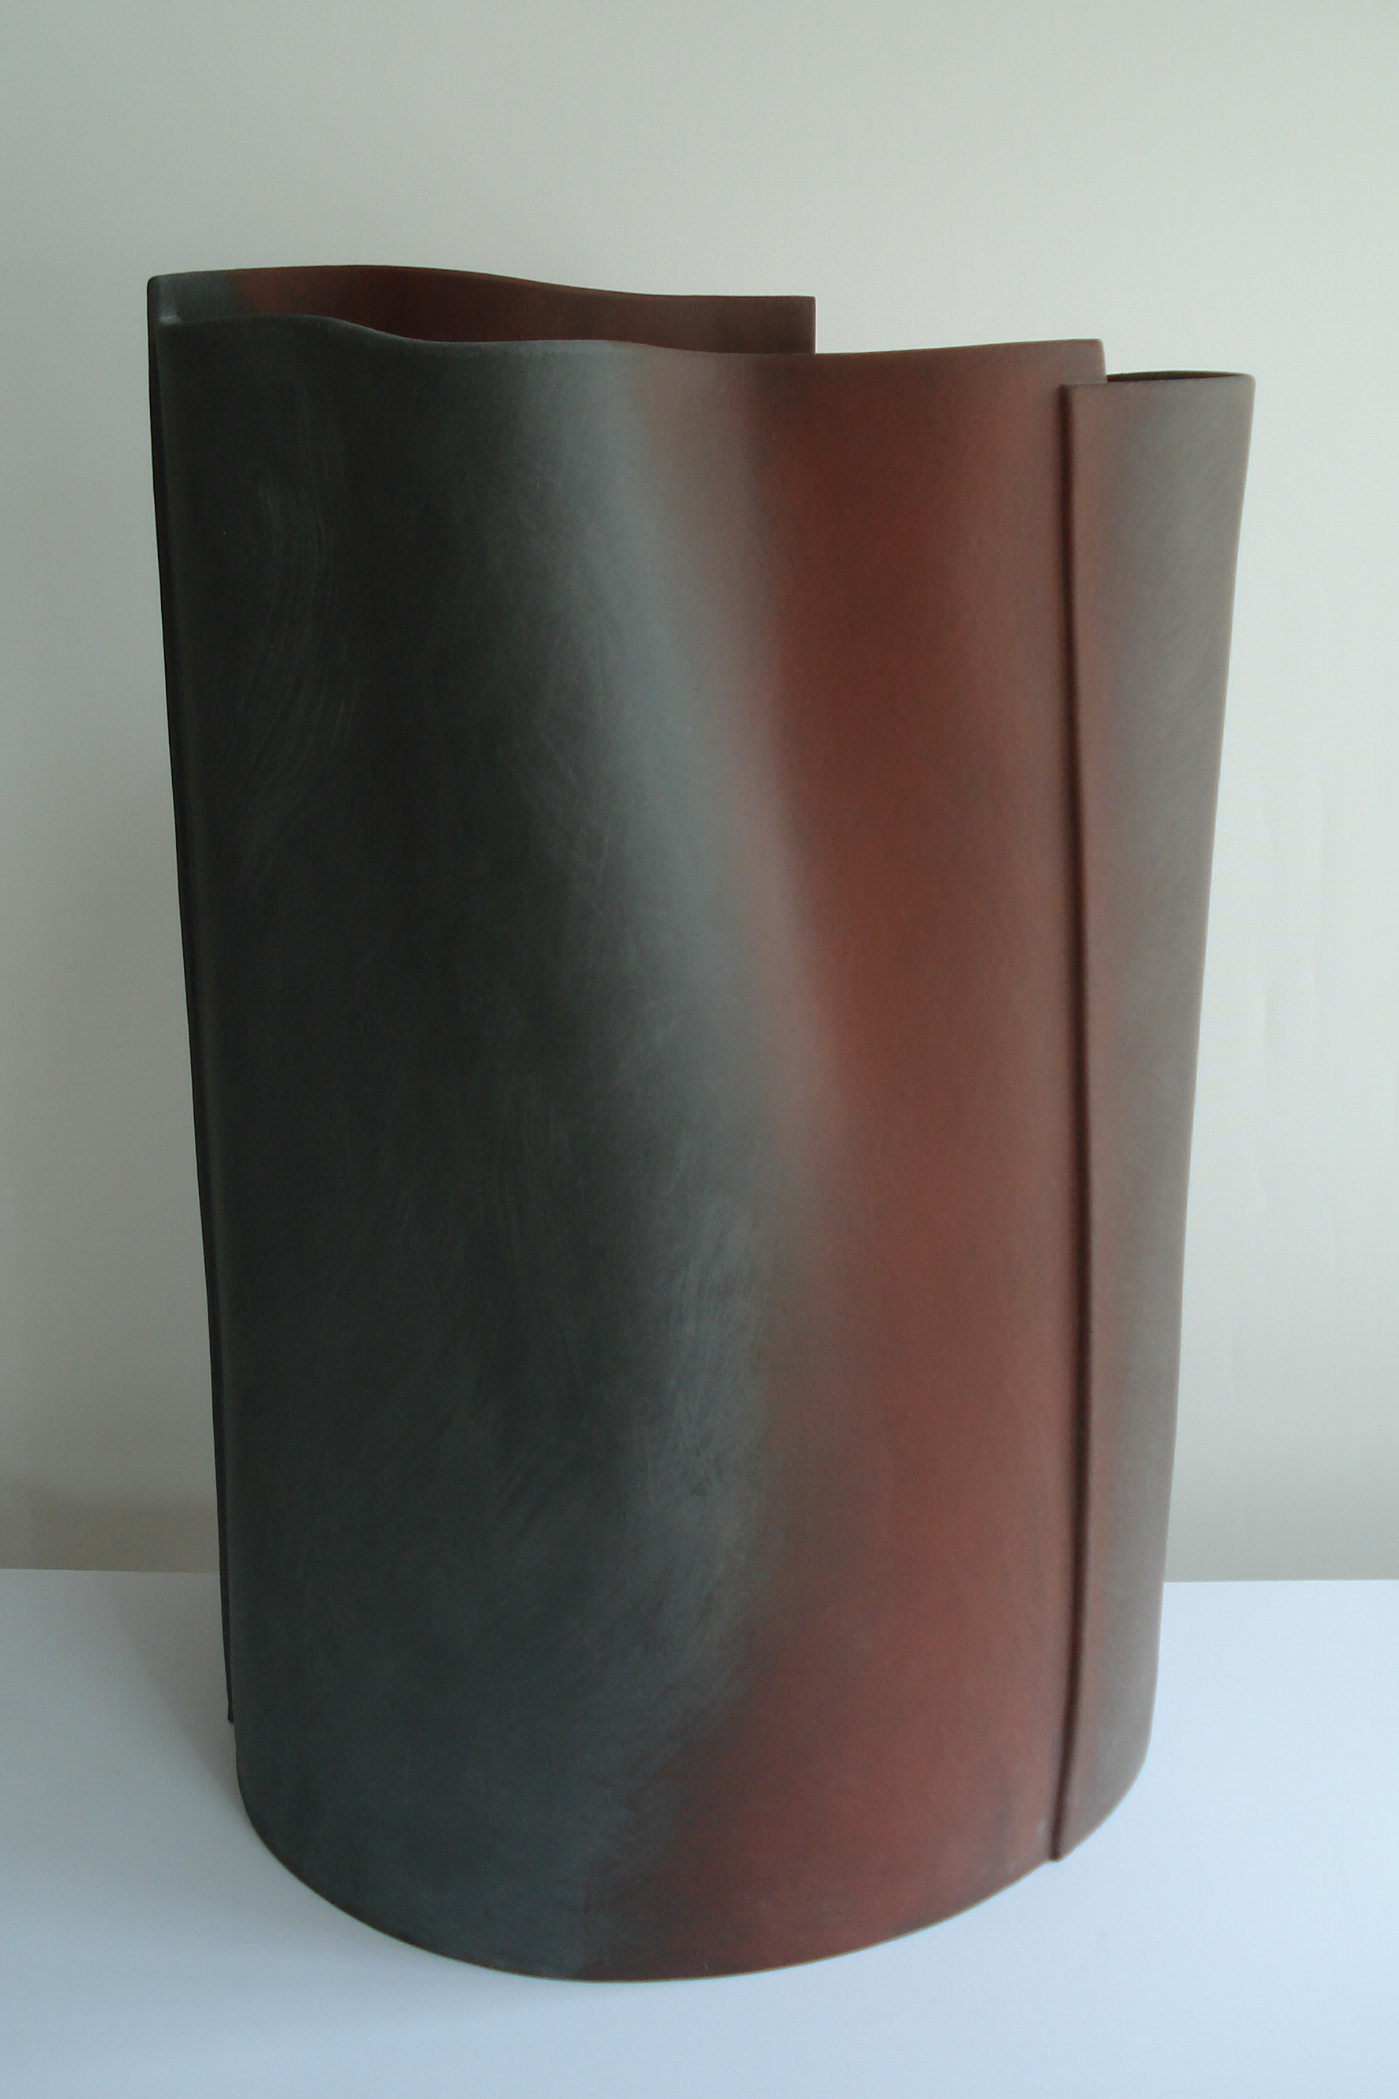 Don't let go, 2005, 71cm high